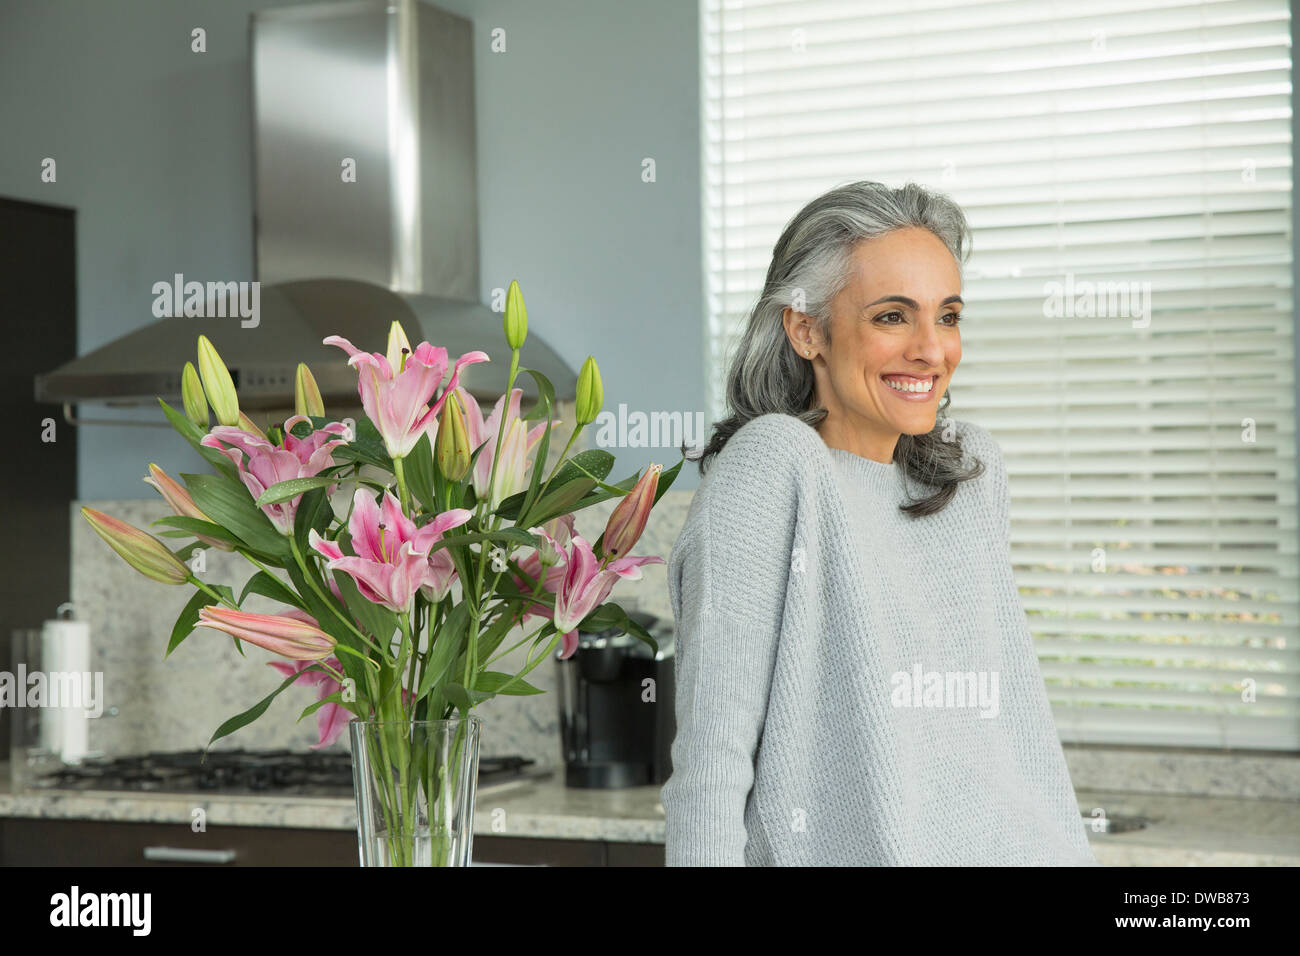 Woman by lily arrangement - Stock Image